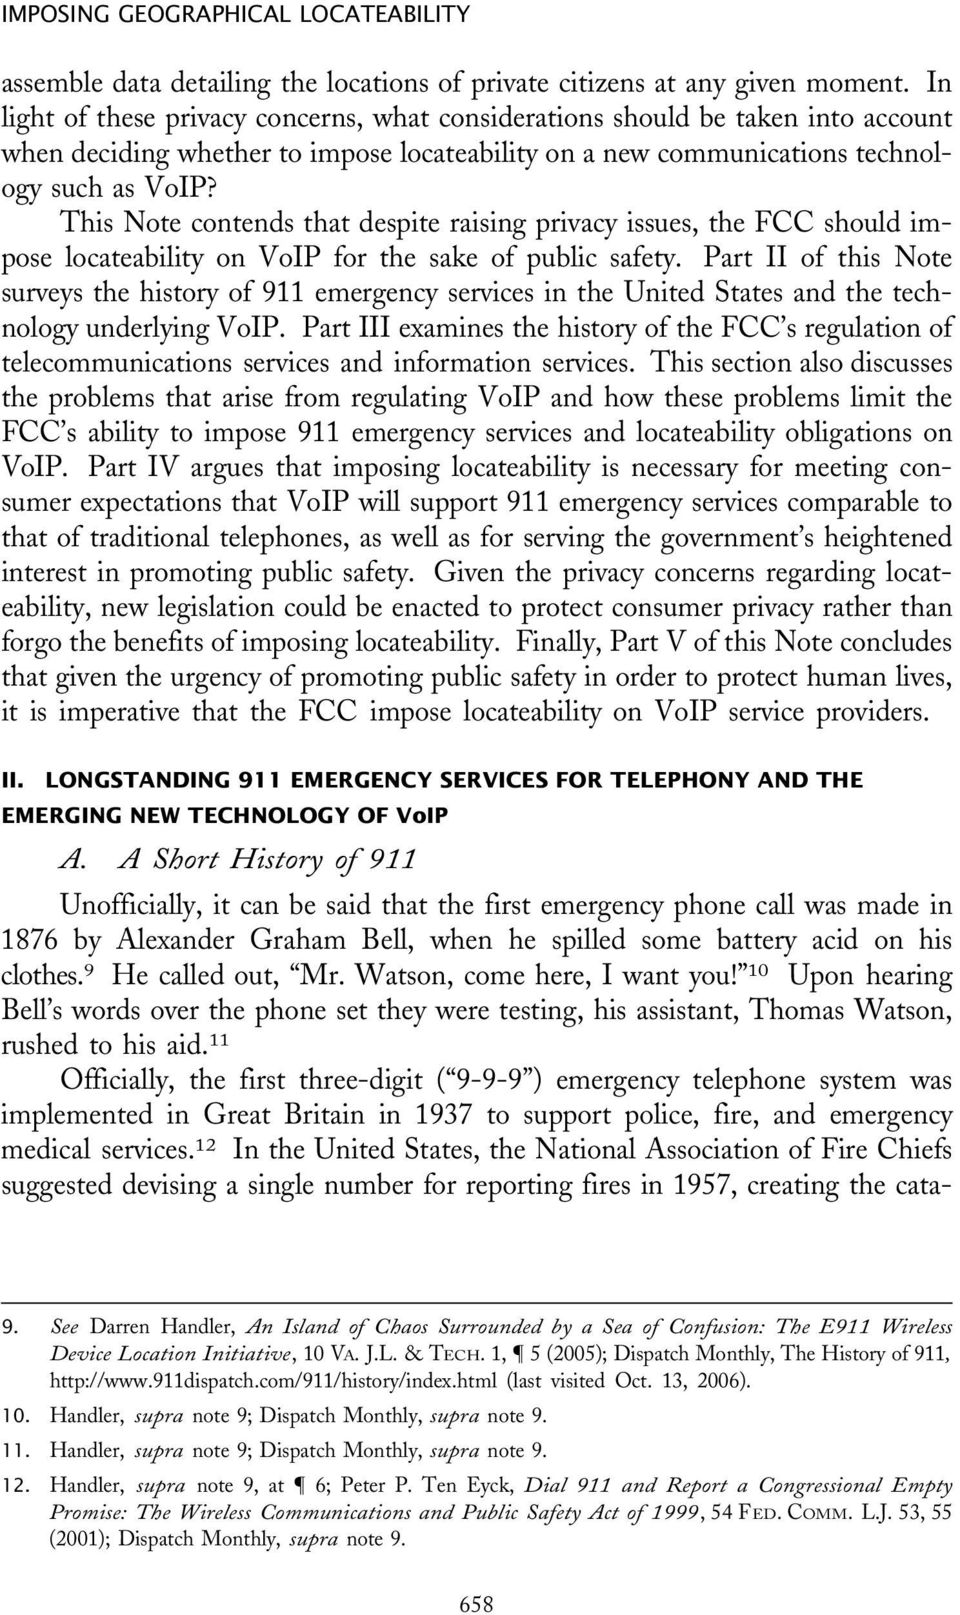 This Note contends that despite raising privacy issues, the FCC should impose locateability on VoIP for the sake of public safety.